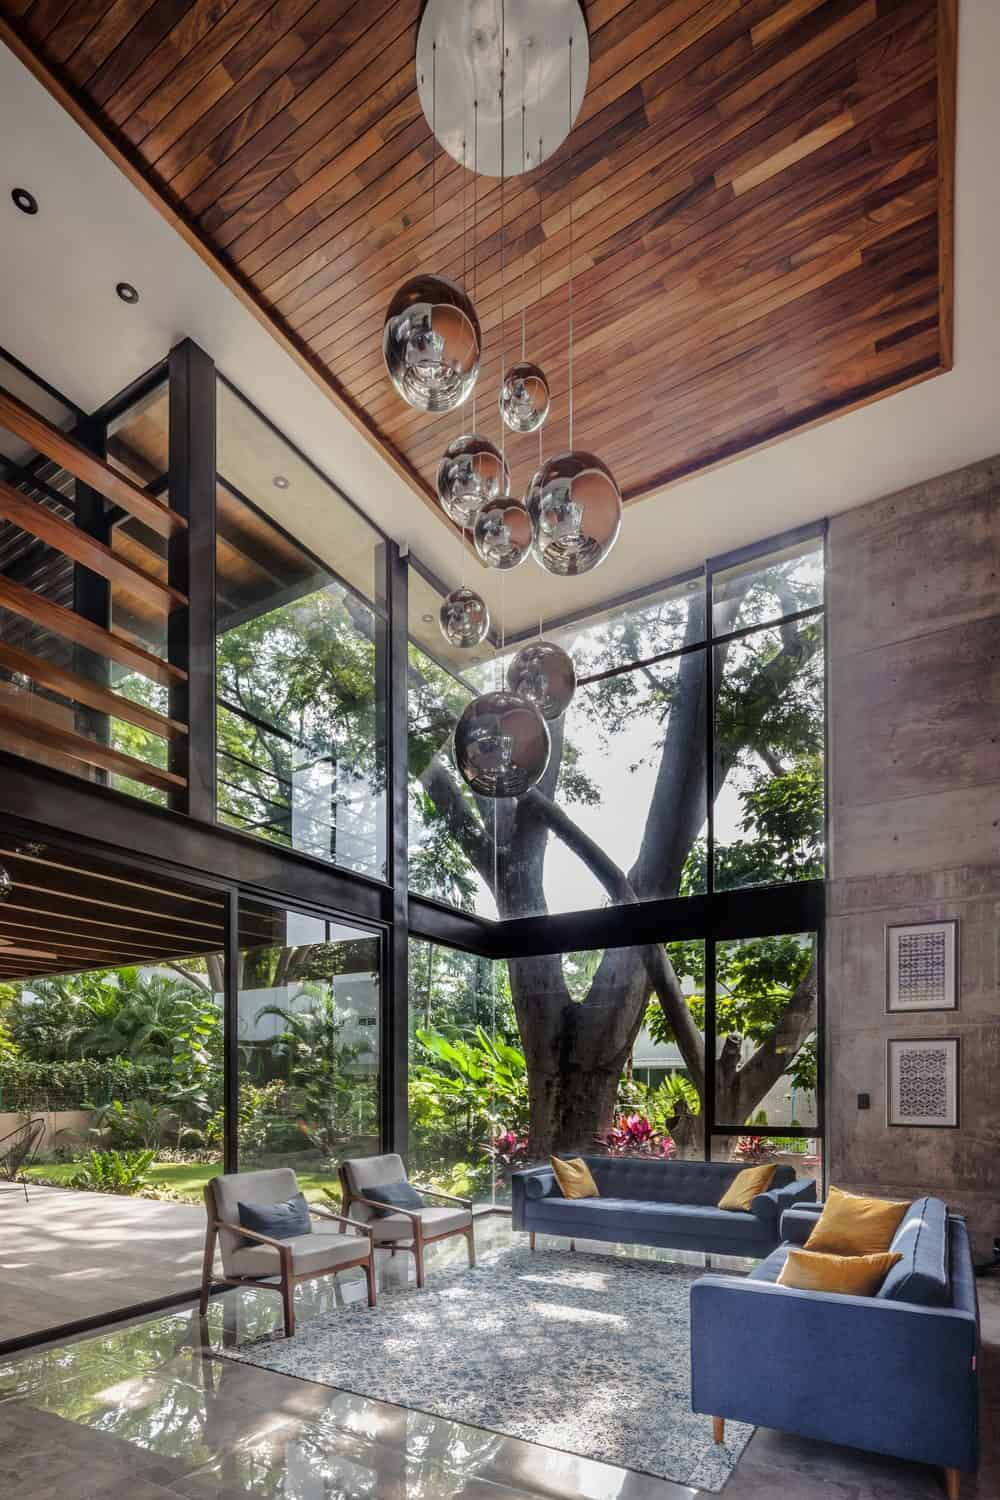 This is the living room with a tall ceiling, tall glass walls and decorative lighting hanging over the sofa sets.